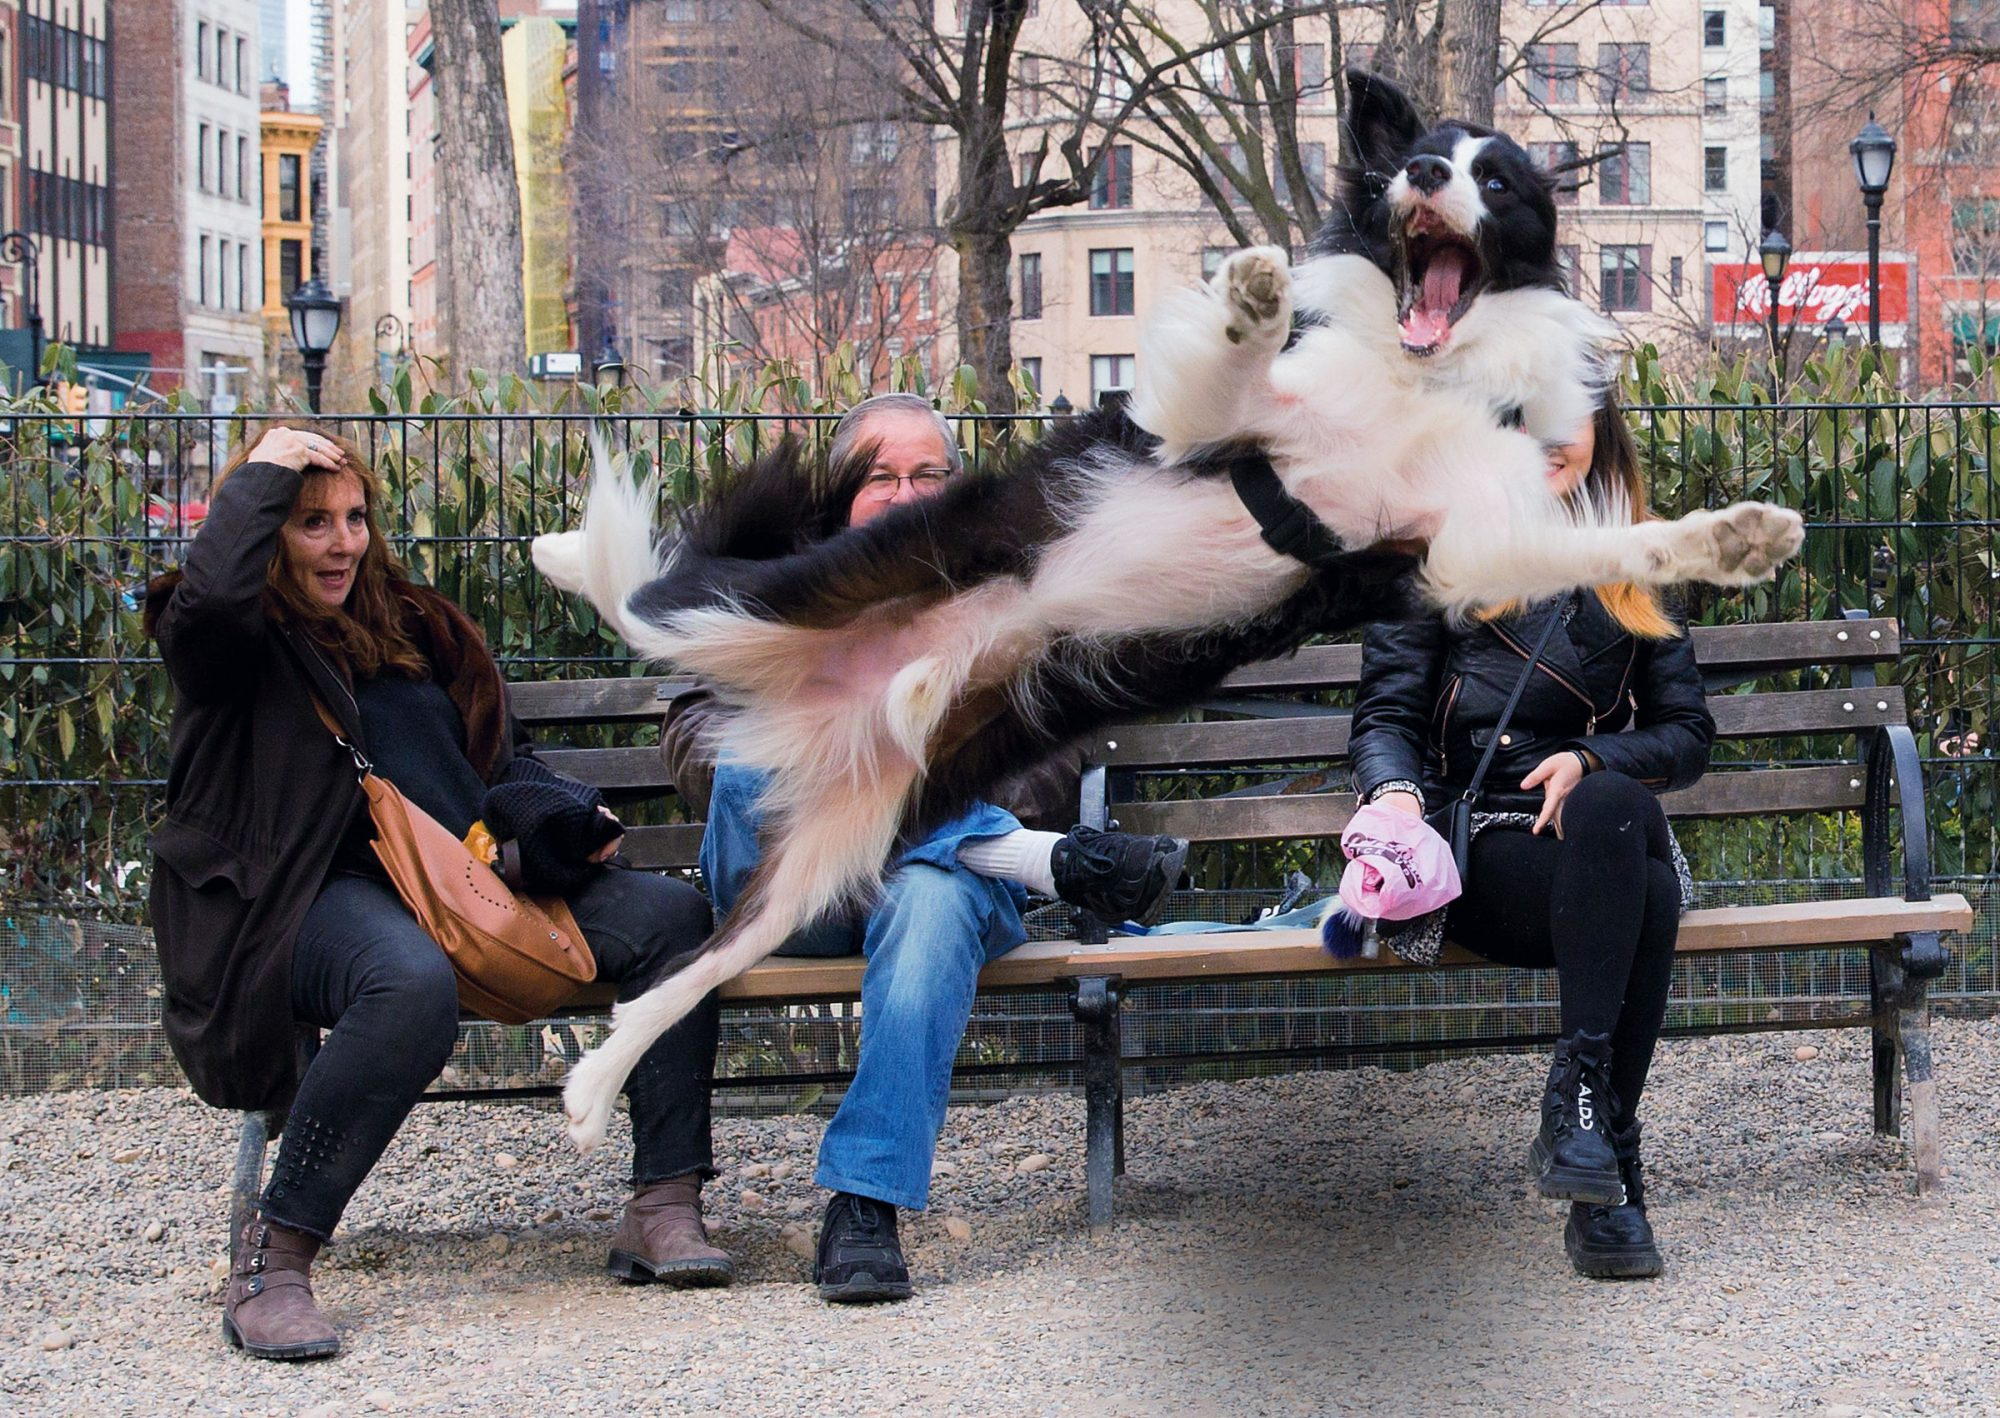 Barking! book March 24th 2019 in Union Square in one of those dog runs.